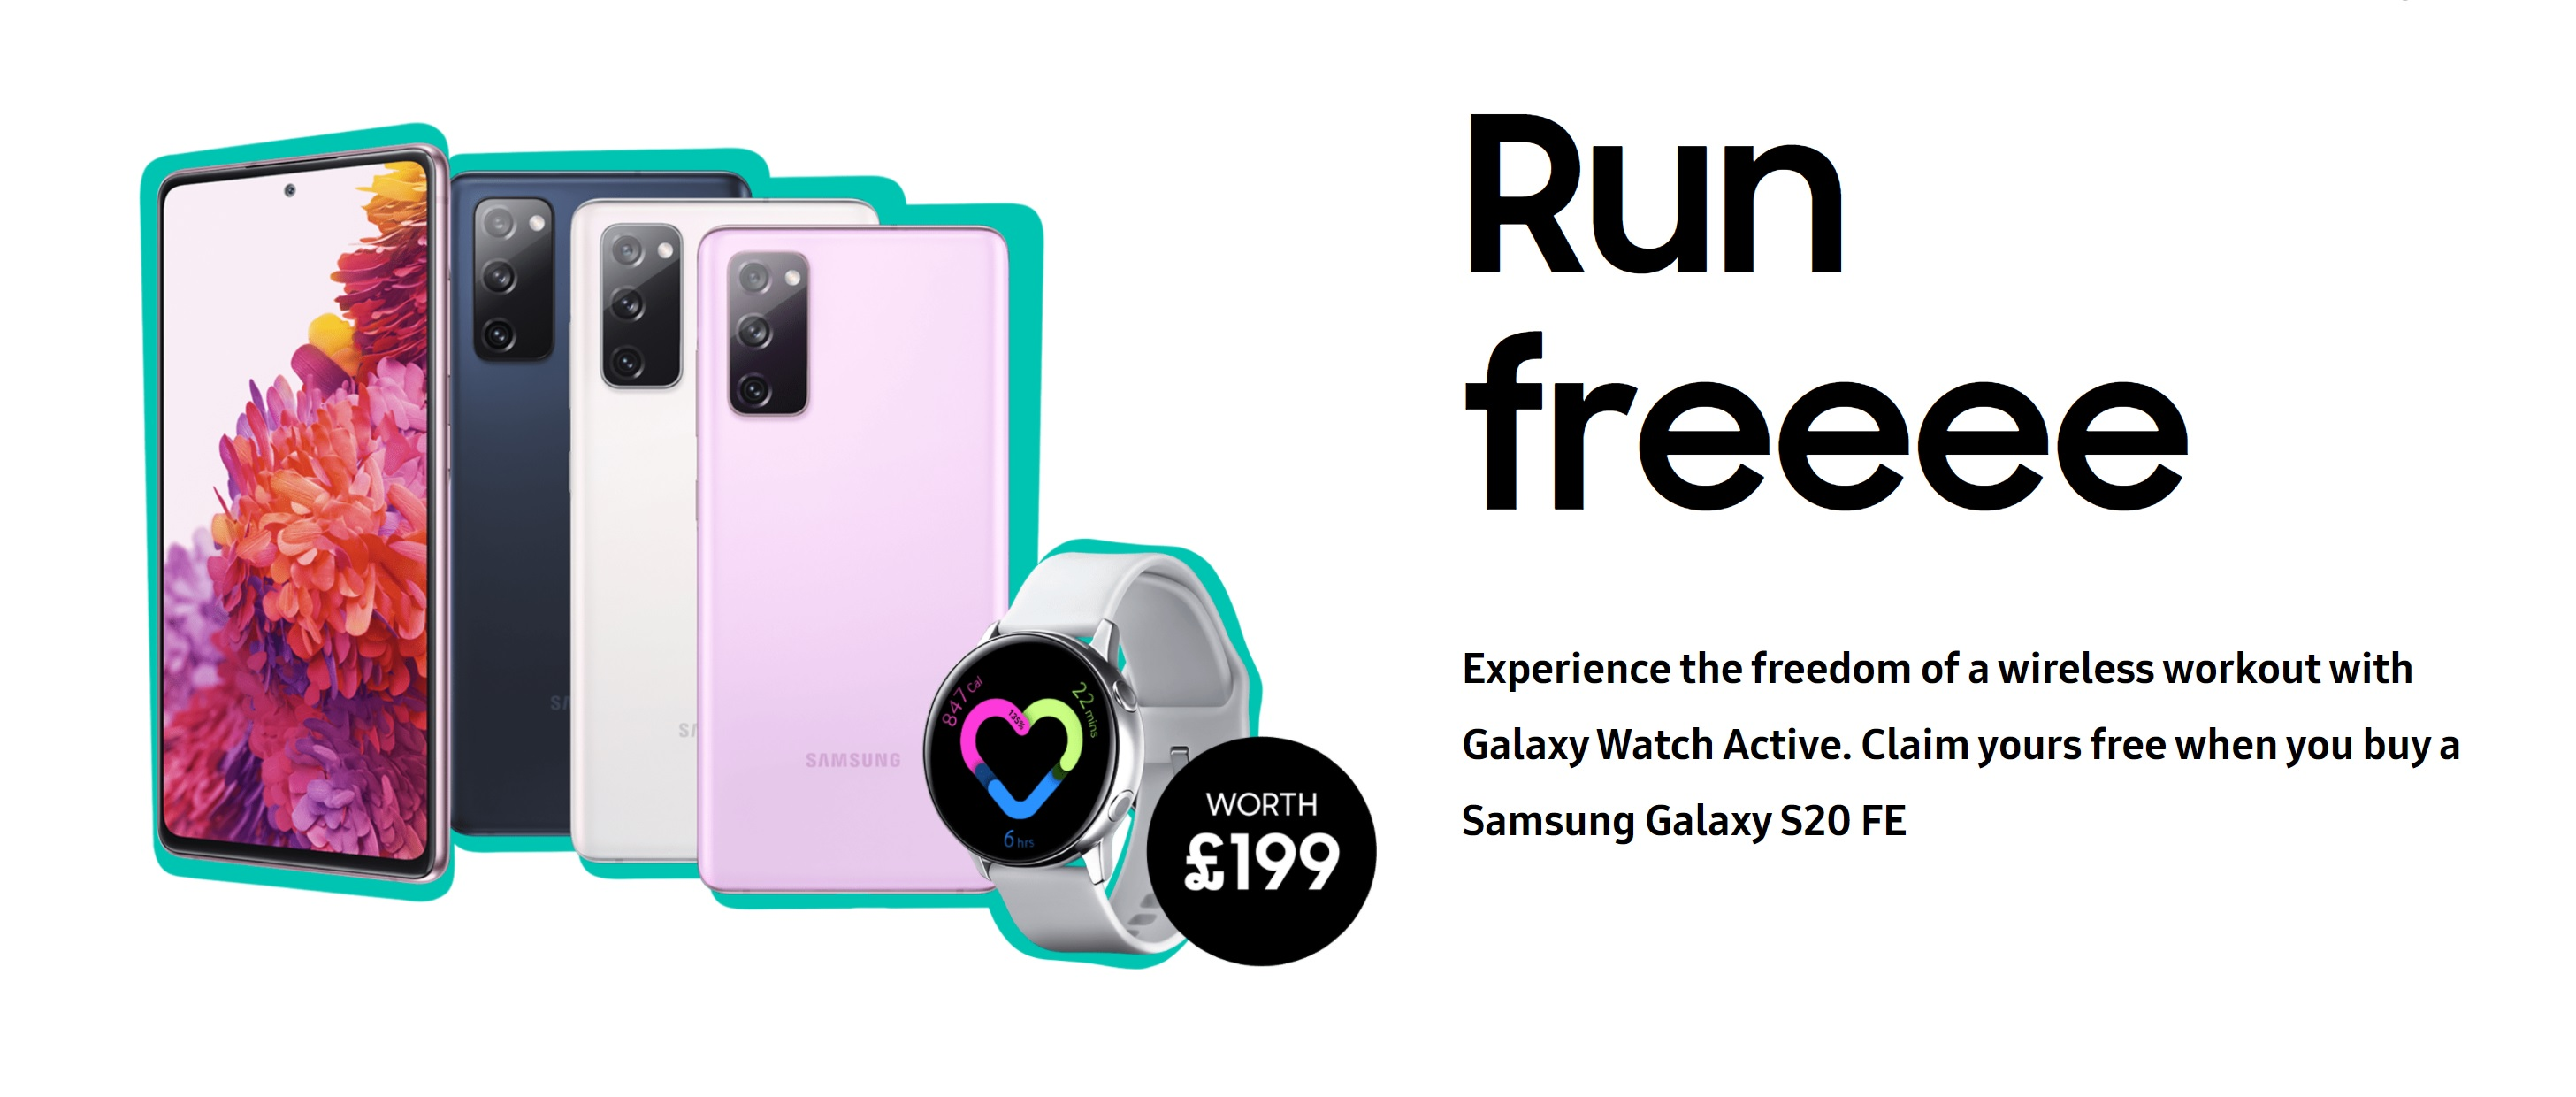 Claim a Free Galaxy Watch Active with Samsung S20 FE 4G and 5G deals